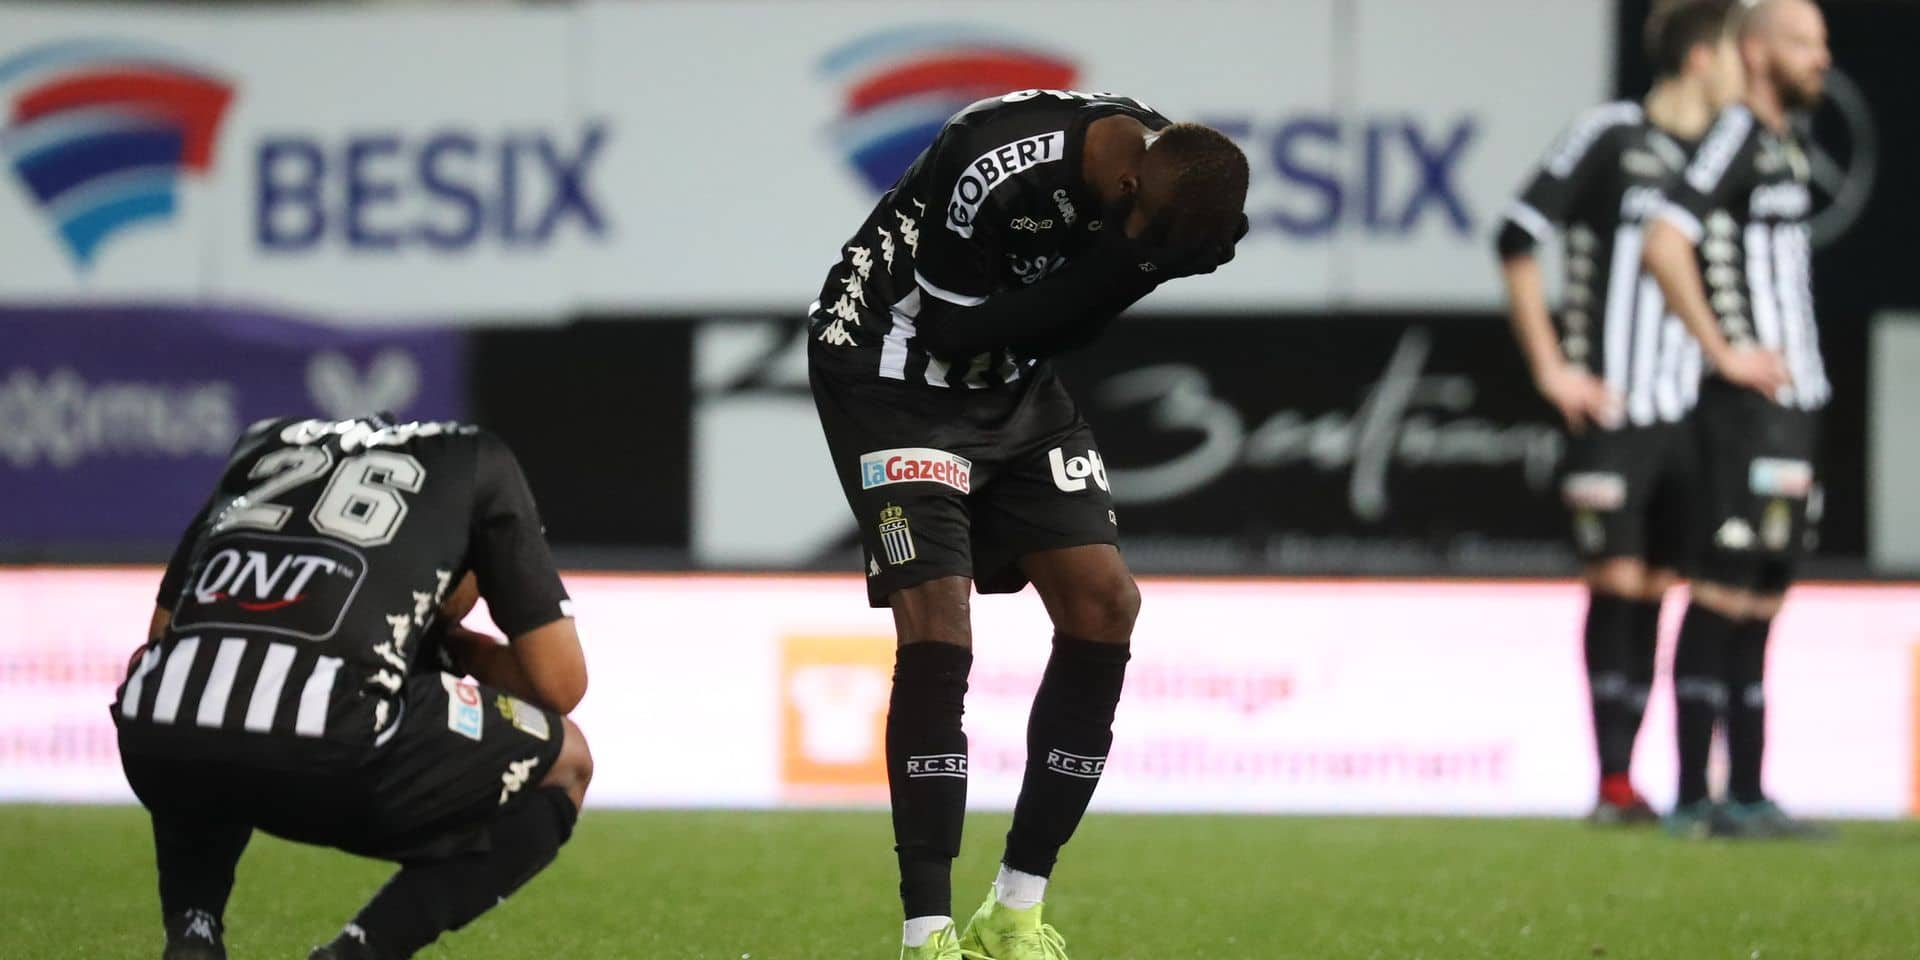 Charleroi's Marco Ilaimaharitra and Charleroi's Victor Osimhen look dejected after a soccer match between Sporting Charleroi and KV Oostende, Saturday 09 February 2019 in Charleroi, on the 25th day of the 'Jupiler Pro League' Belgian soccer championship season 2018-2019. BELGA PHOTO VIRGINIE LEFOUR